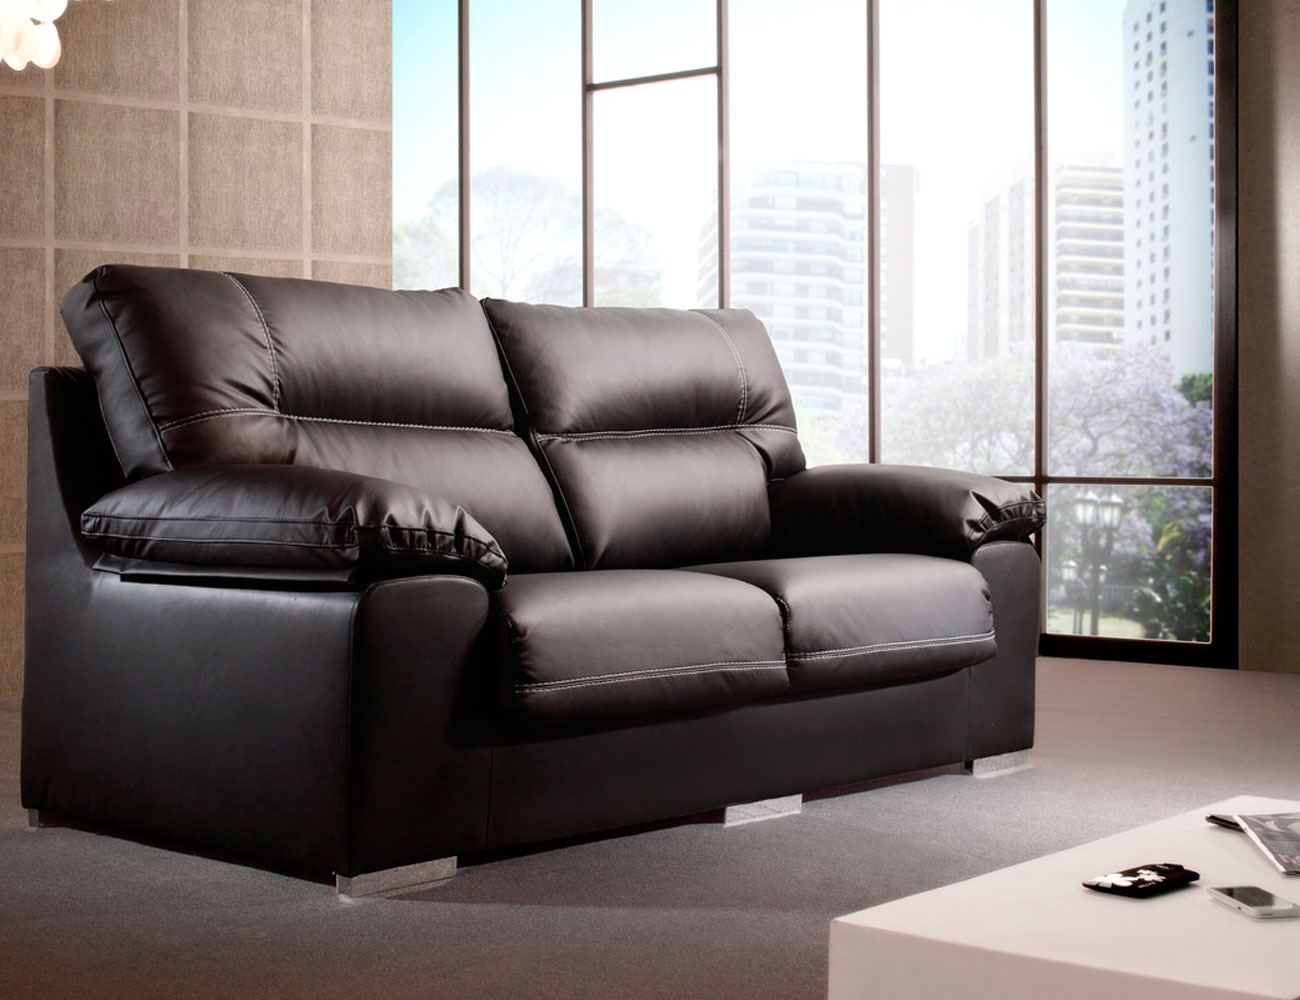 Sofa 3 plazas polipiel negro14